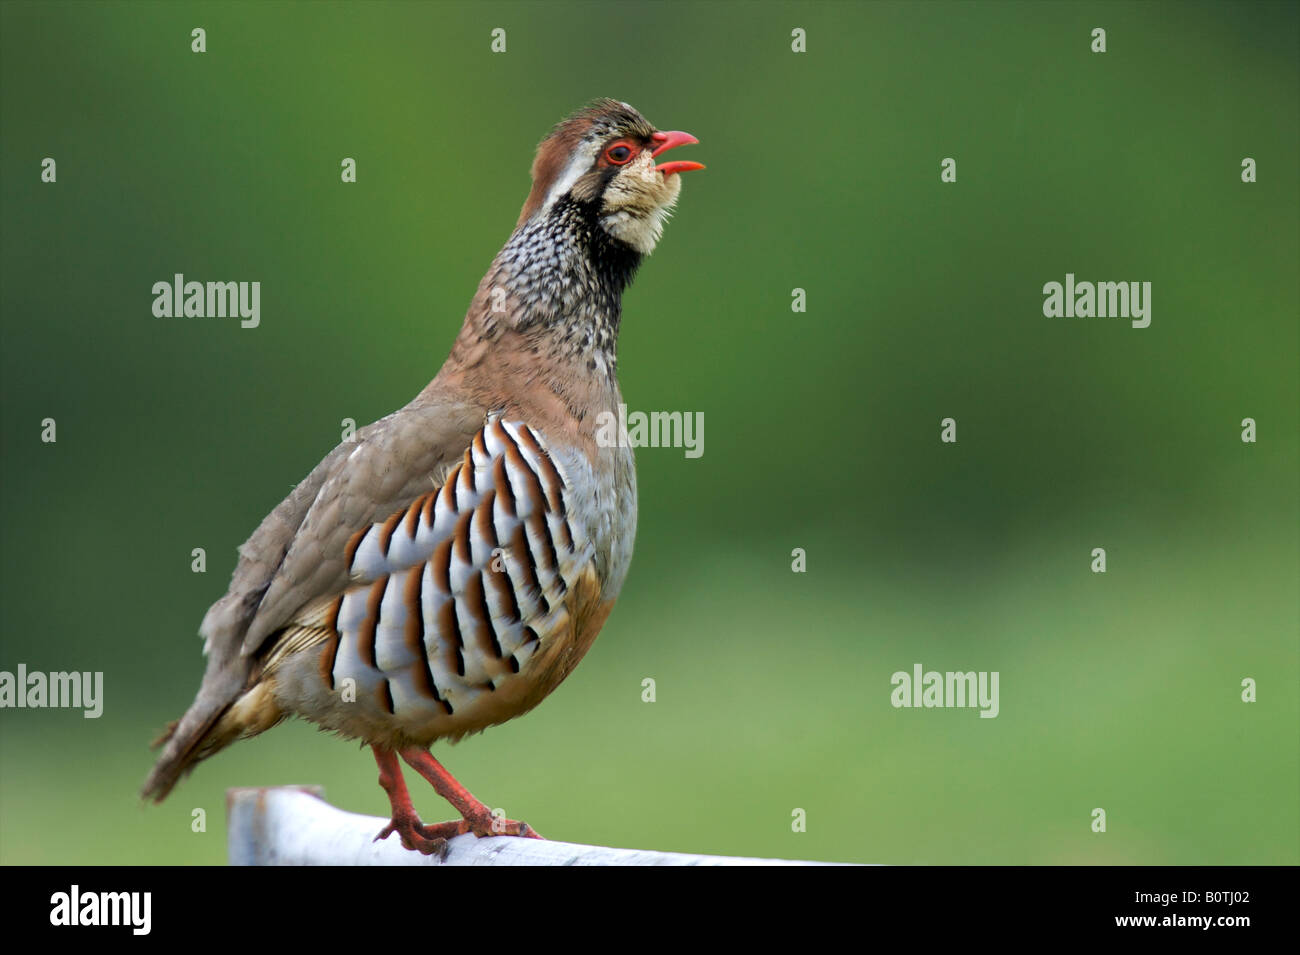 Red legged partridge calling - Stock Image